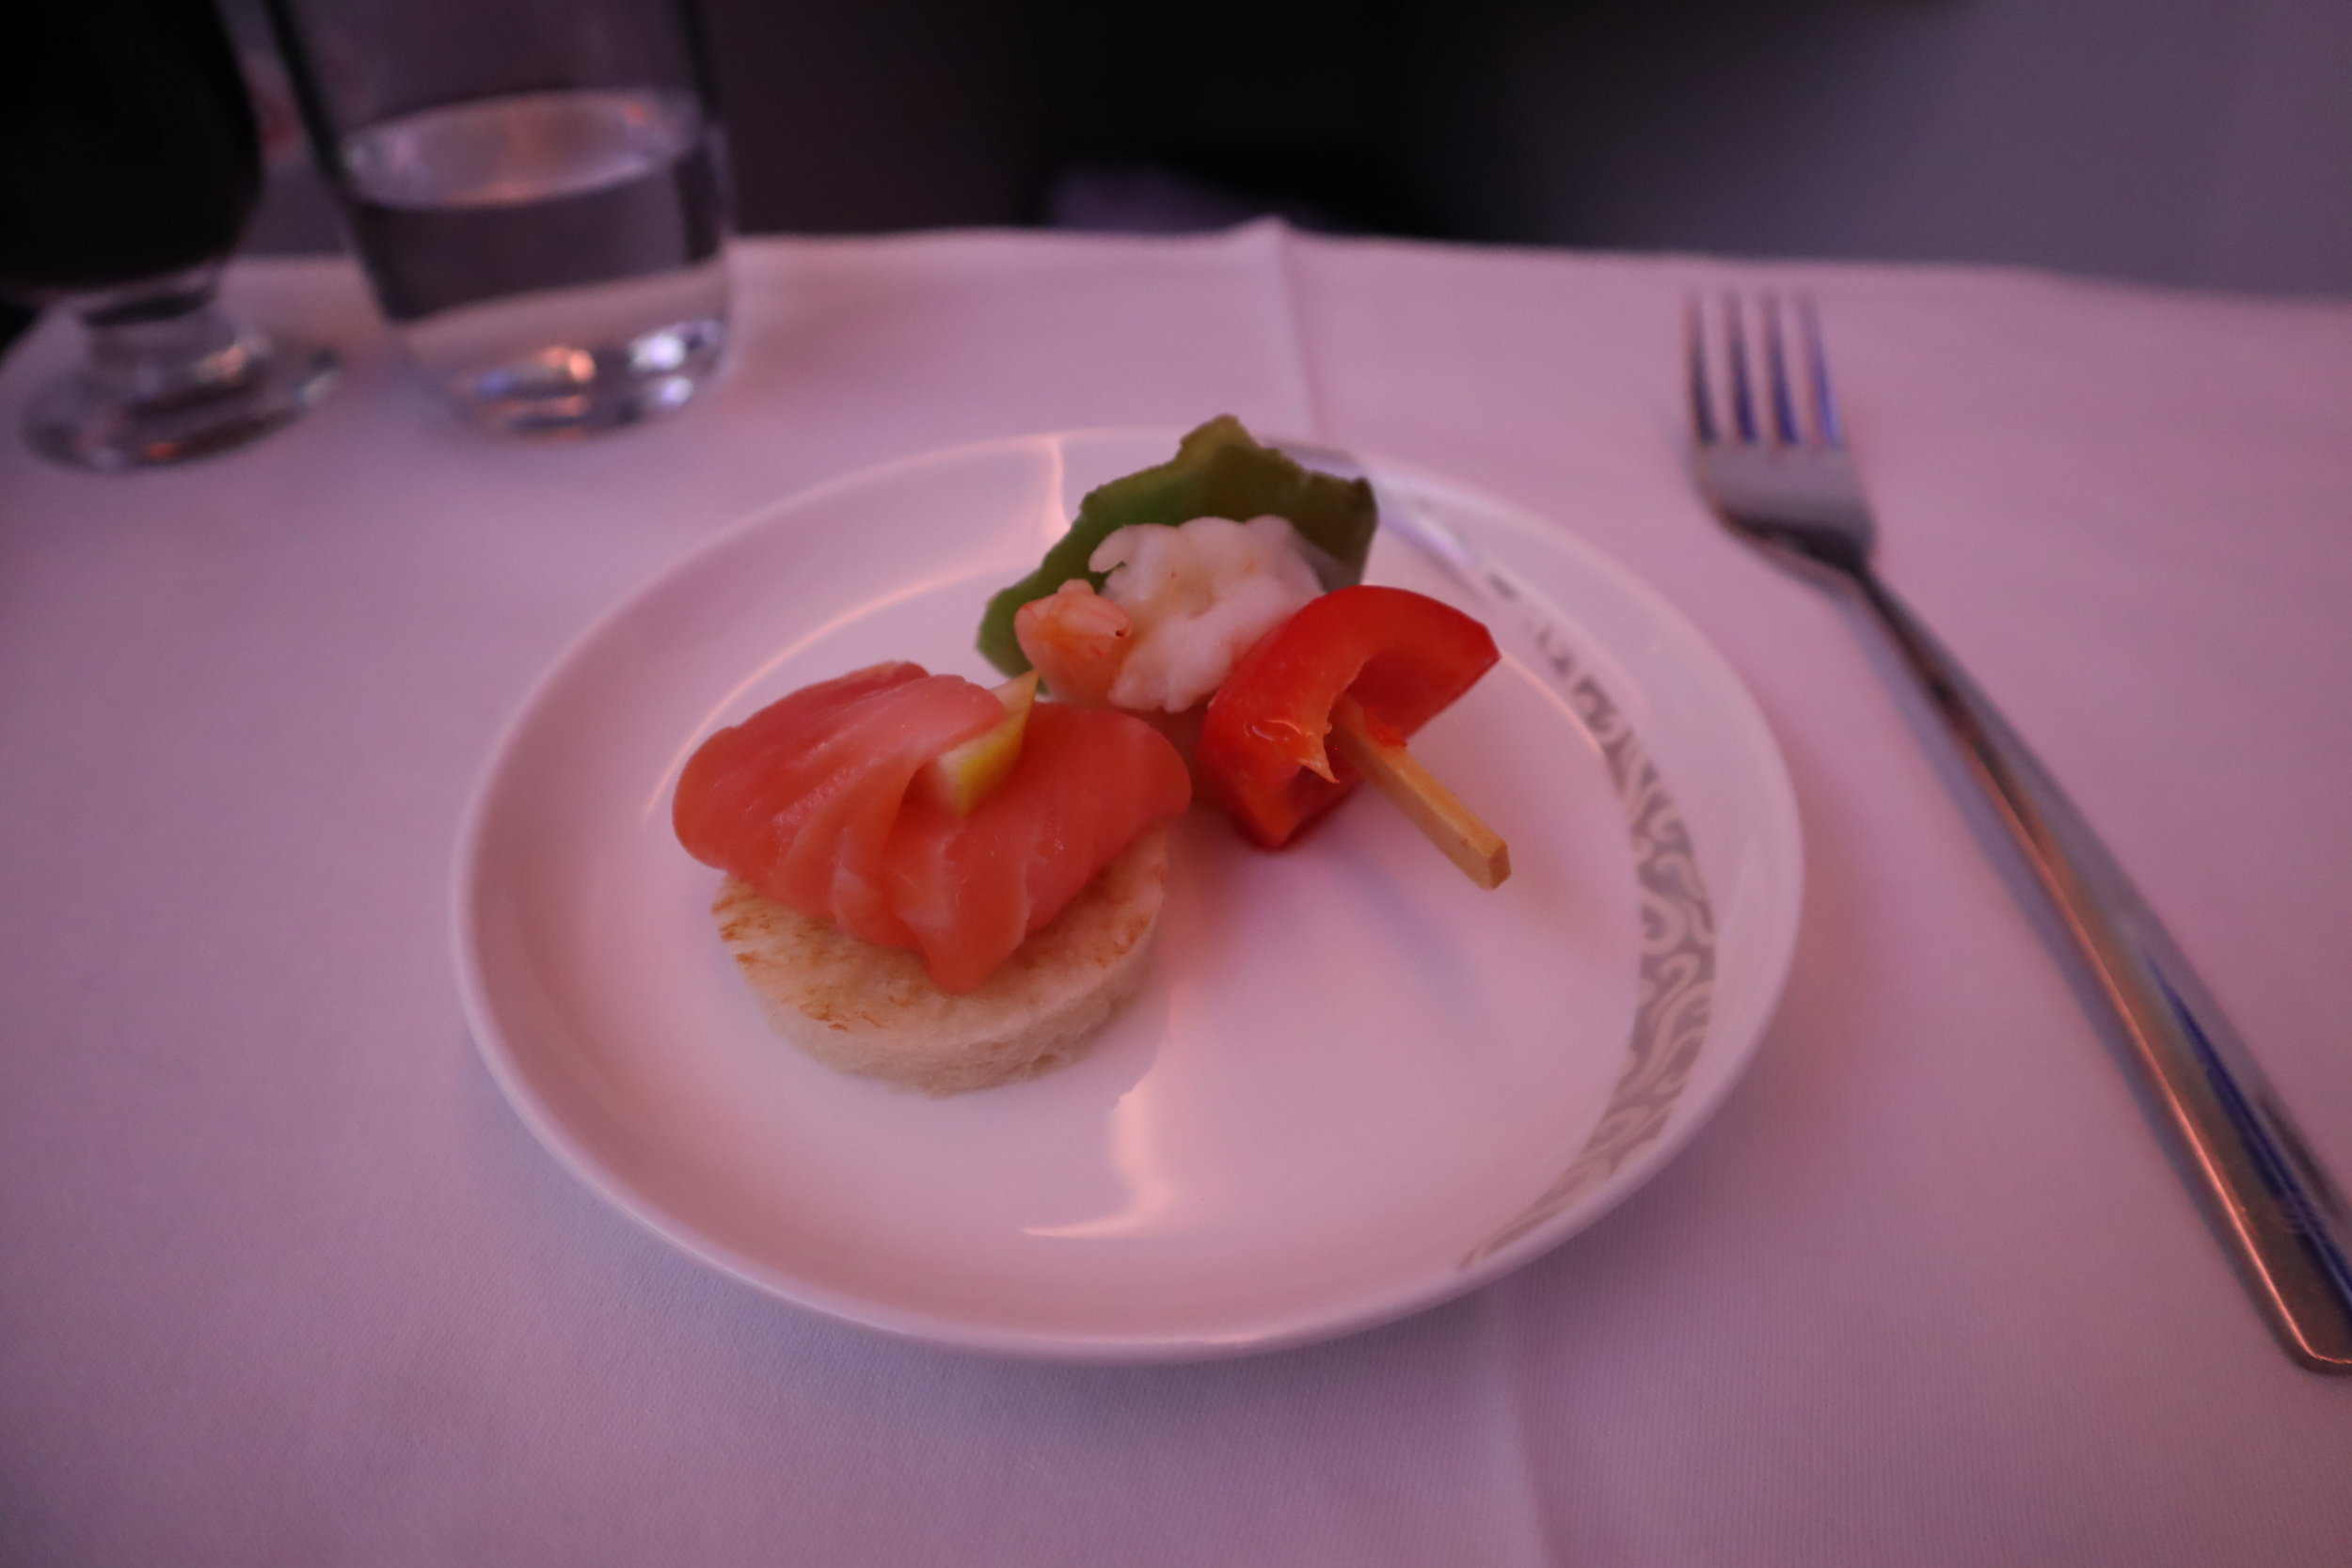 Air China business class – Amuse bouche